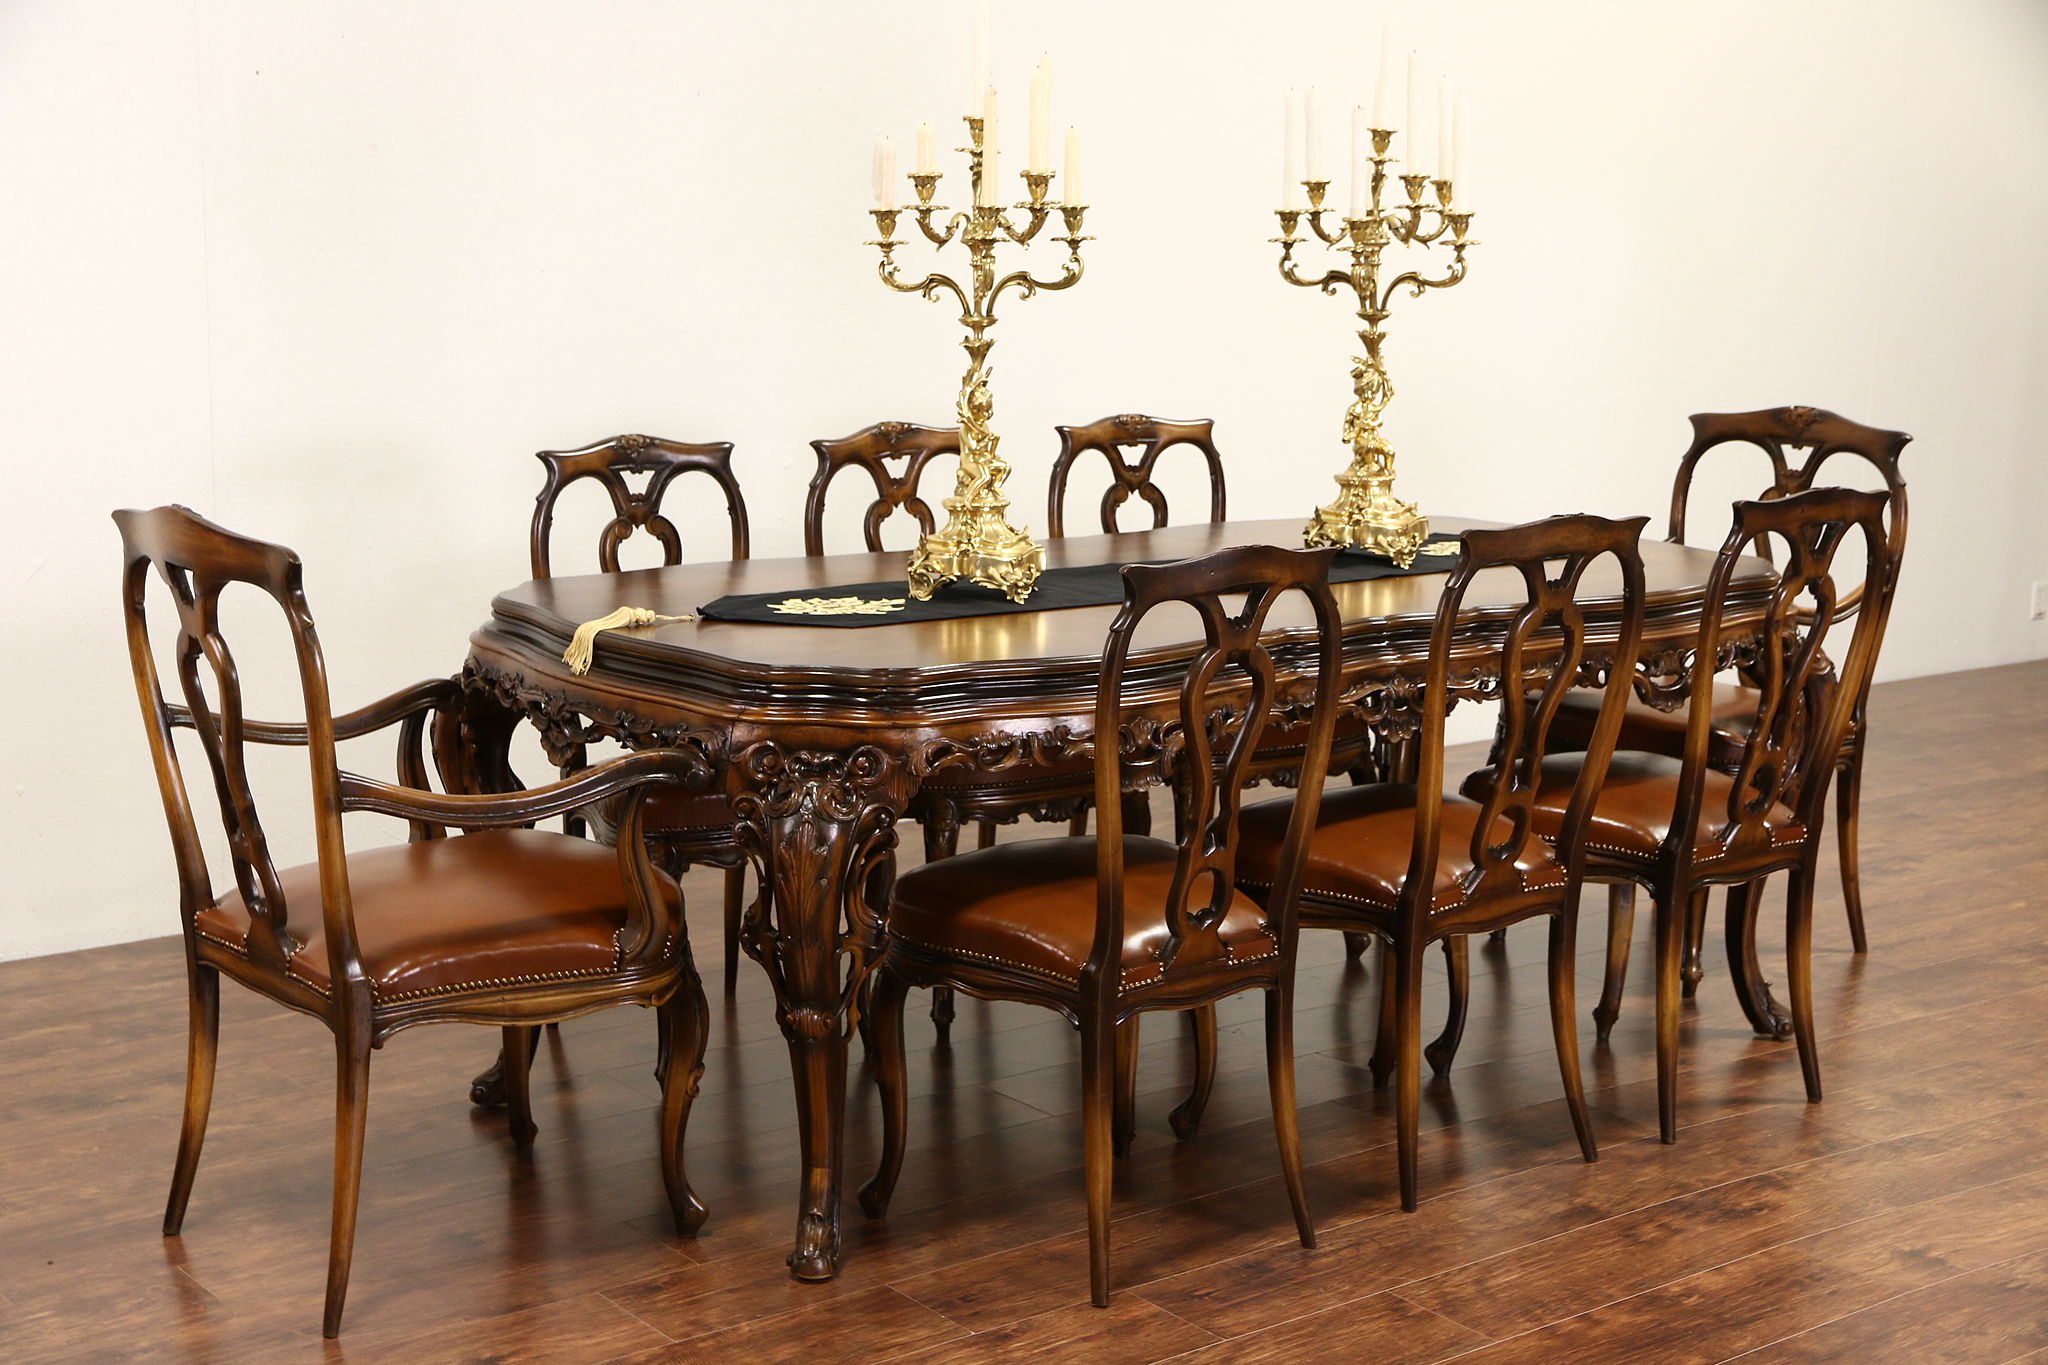 Sold Italian Baroque Carved 1930 S Vintage Dining Set Table 8 Leather Chairs Harp Gallery Antiques Furniture